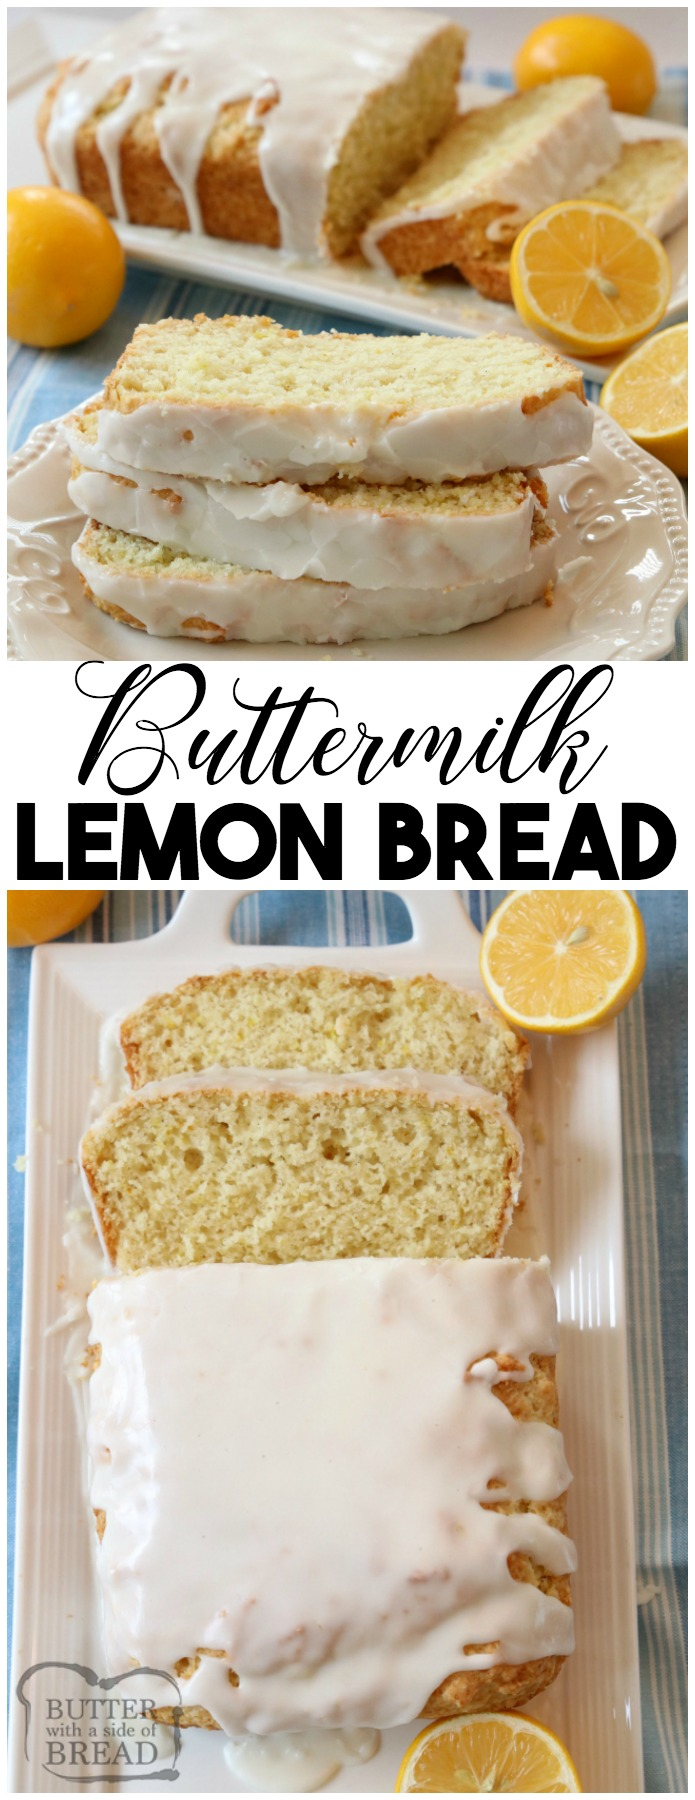 Lemon Buttermilk Bread recipe made with simple ingredients and topped with a bright, fresh lemon glaze. Buttermilk adds a wonderful flavor and texture to this easy lemon bread recipe. Sweet quick bread for anyone who loves baking with lemon! #Lemon #Buttermilk #Bread from Butter With A Side of Bread #quickbread #baking #lemonrecipe #food #easybread